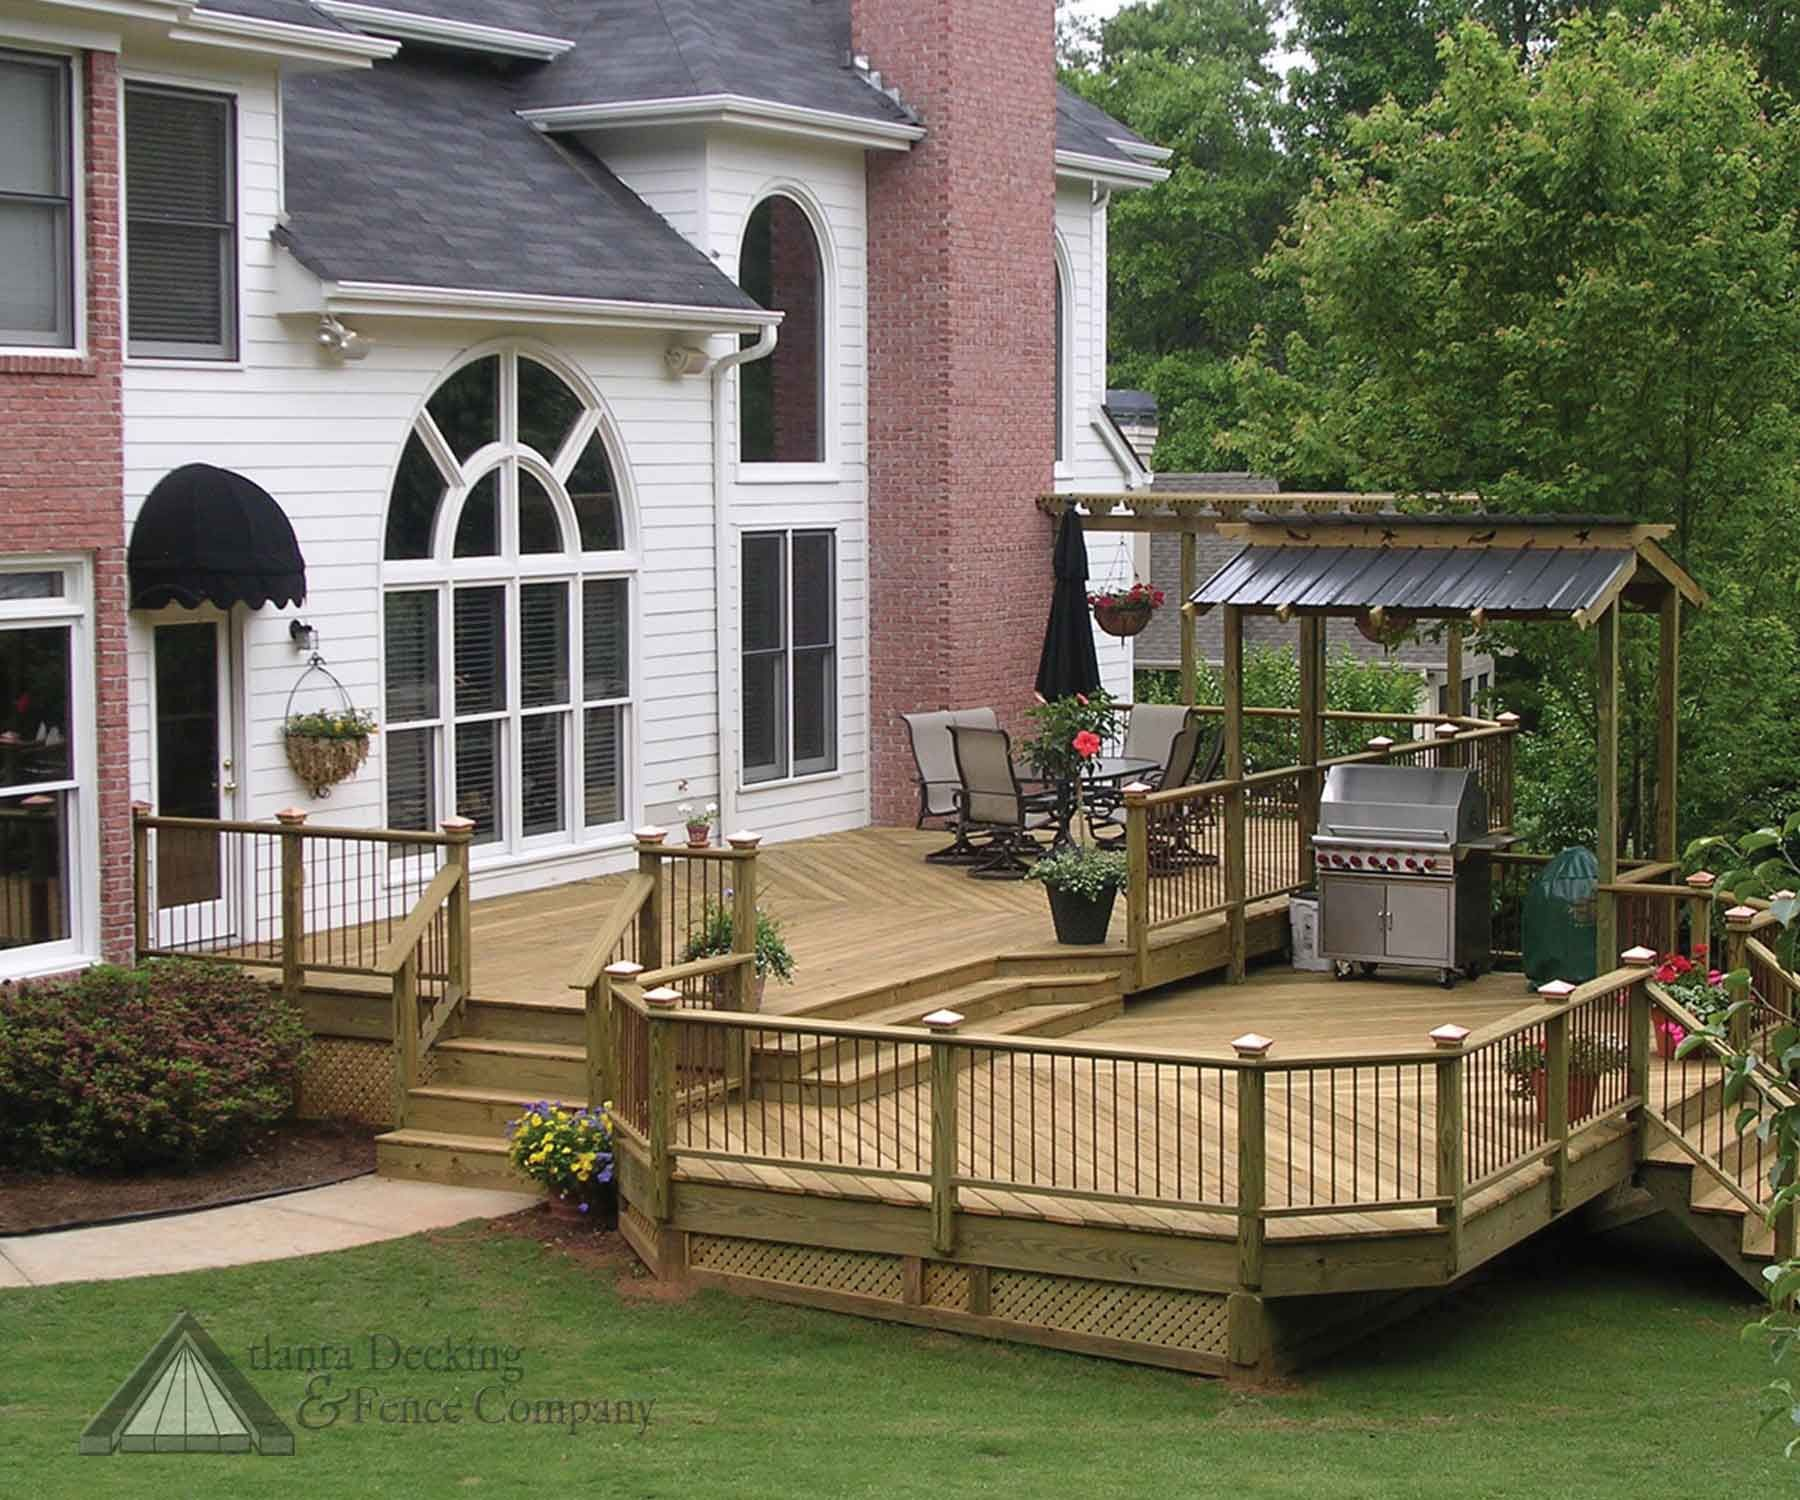 2 tier deck tiered deck with bbq shed from atlanta decking and